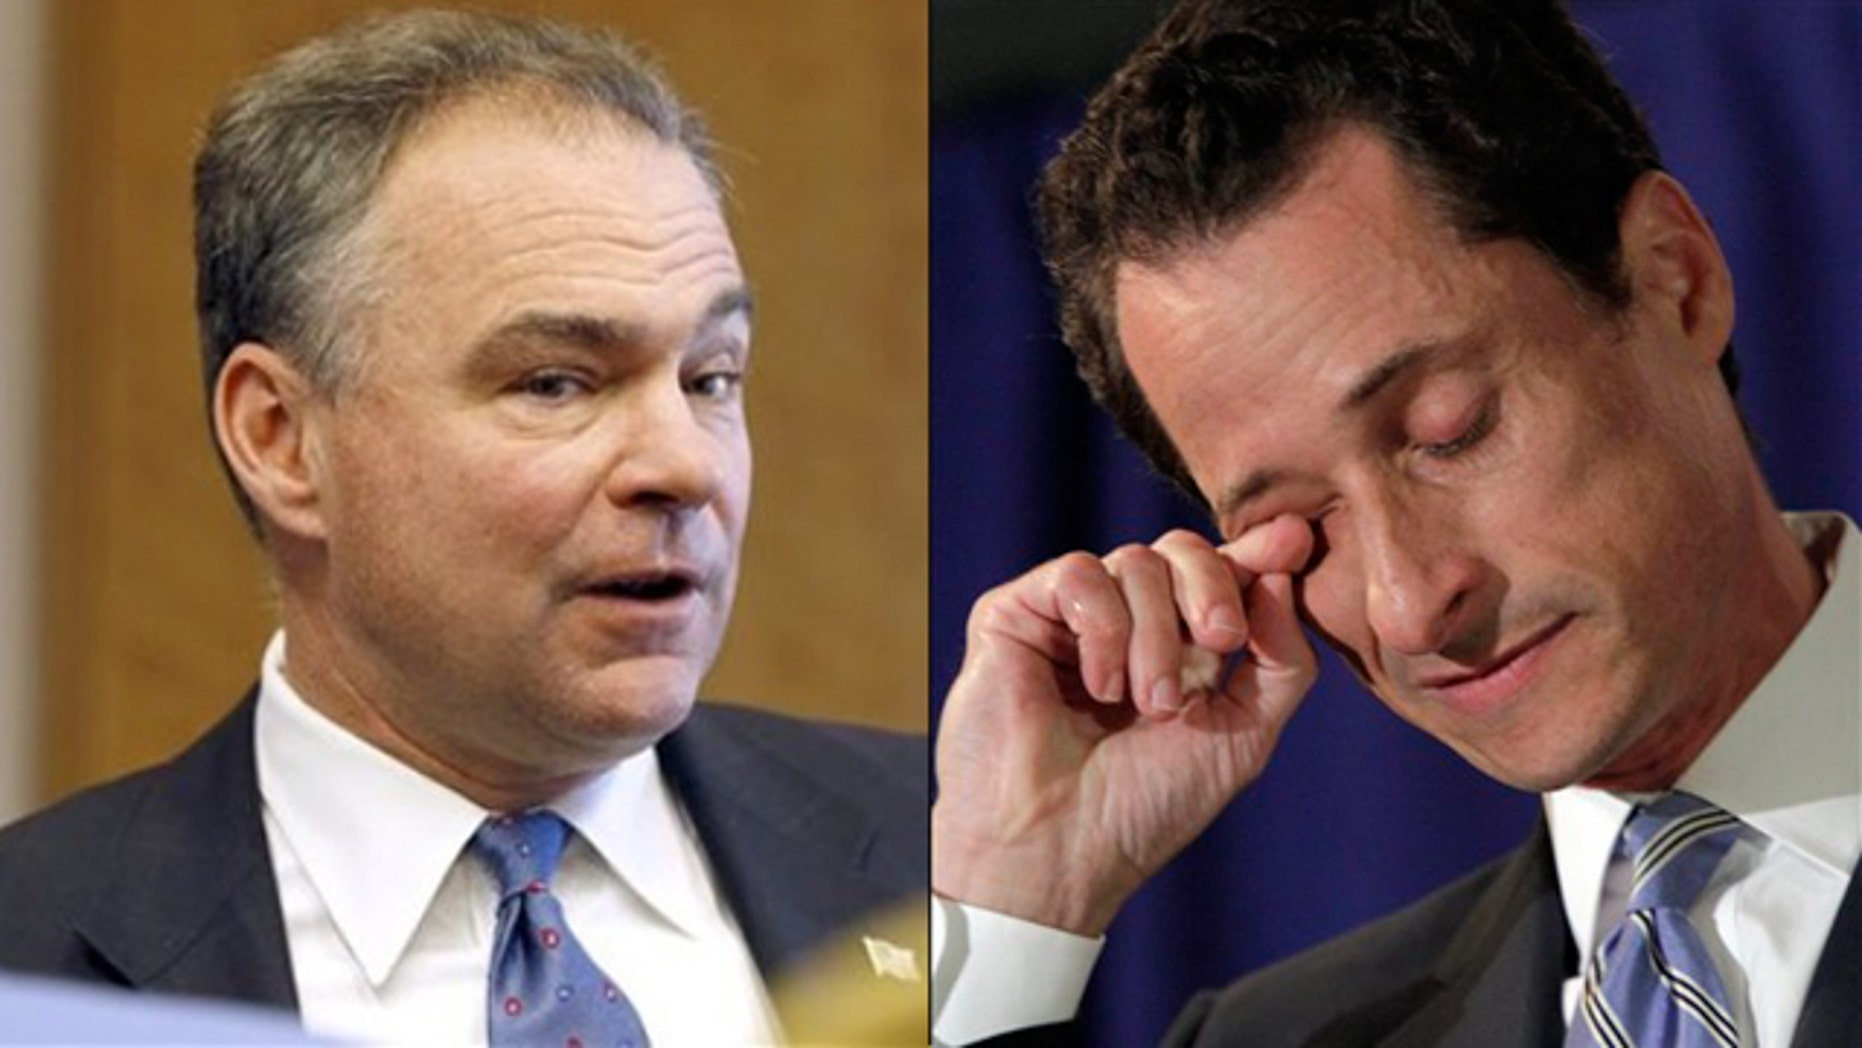 Shown here are former Democratic Party chief Tim Kaine, left, and Rep. Anthony Weiner.